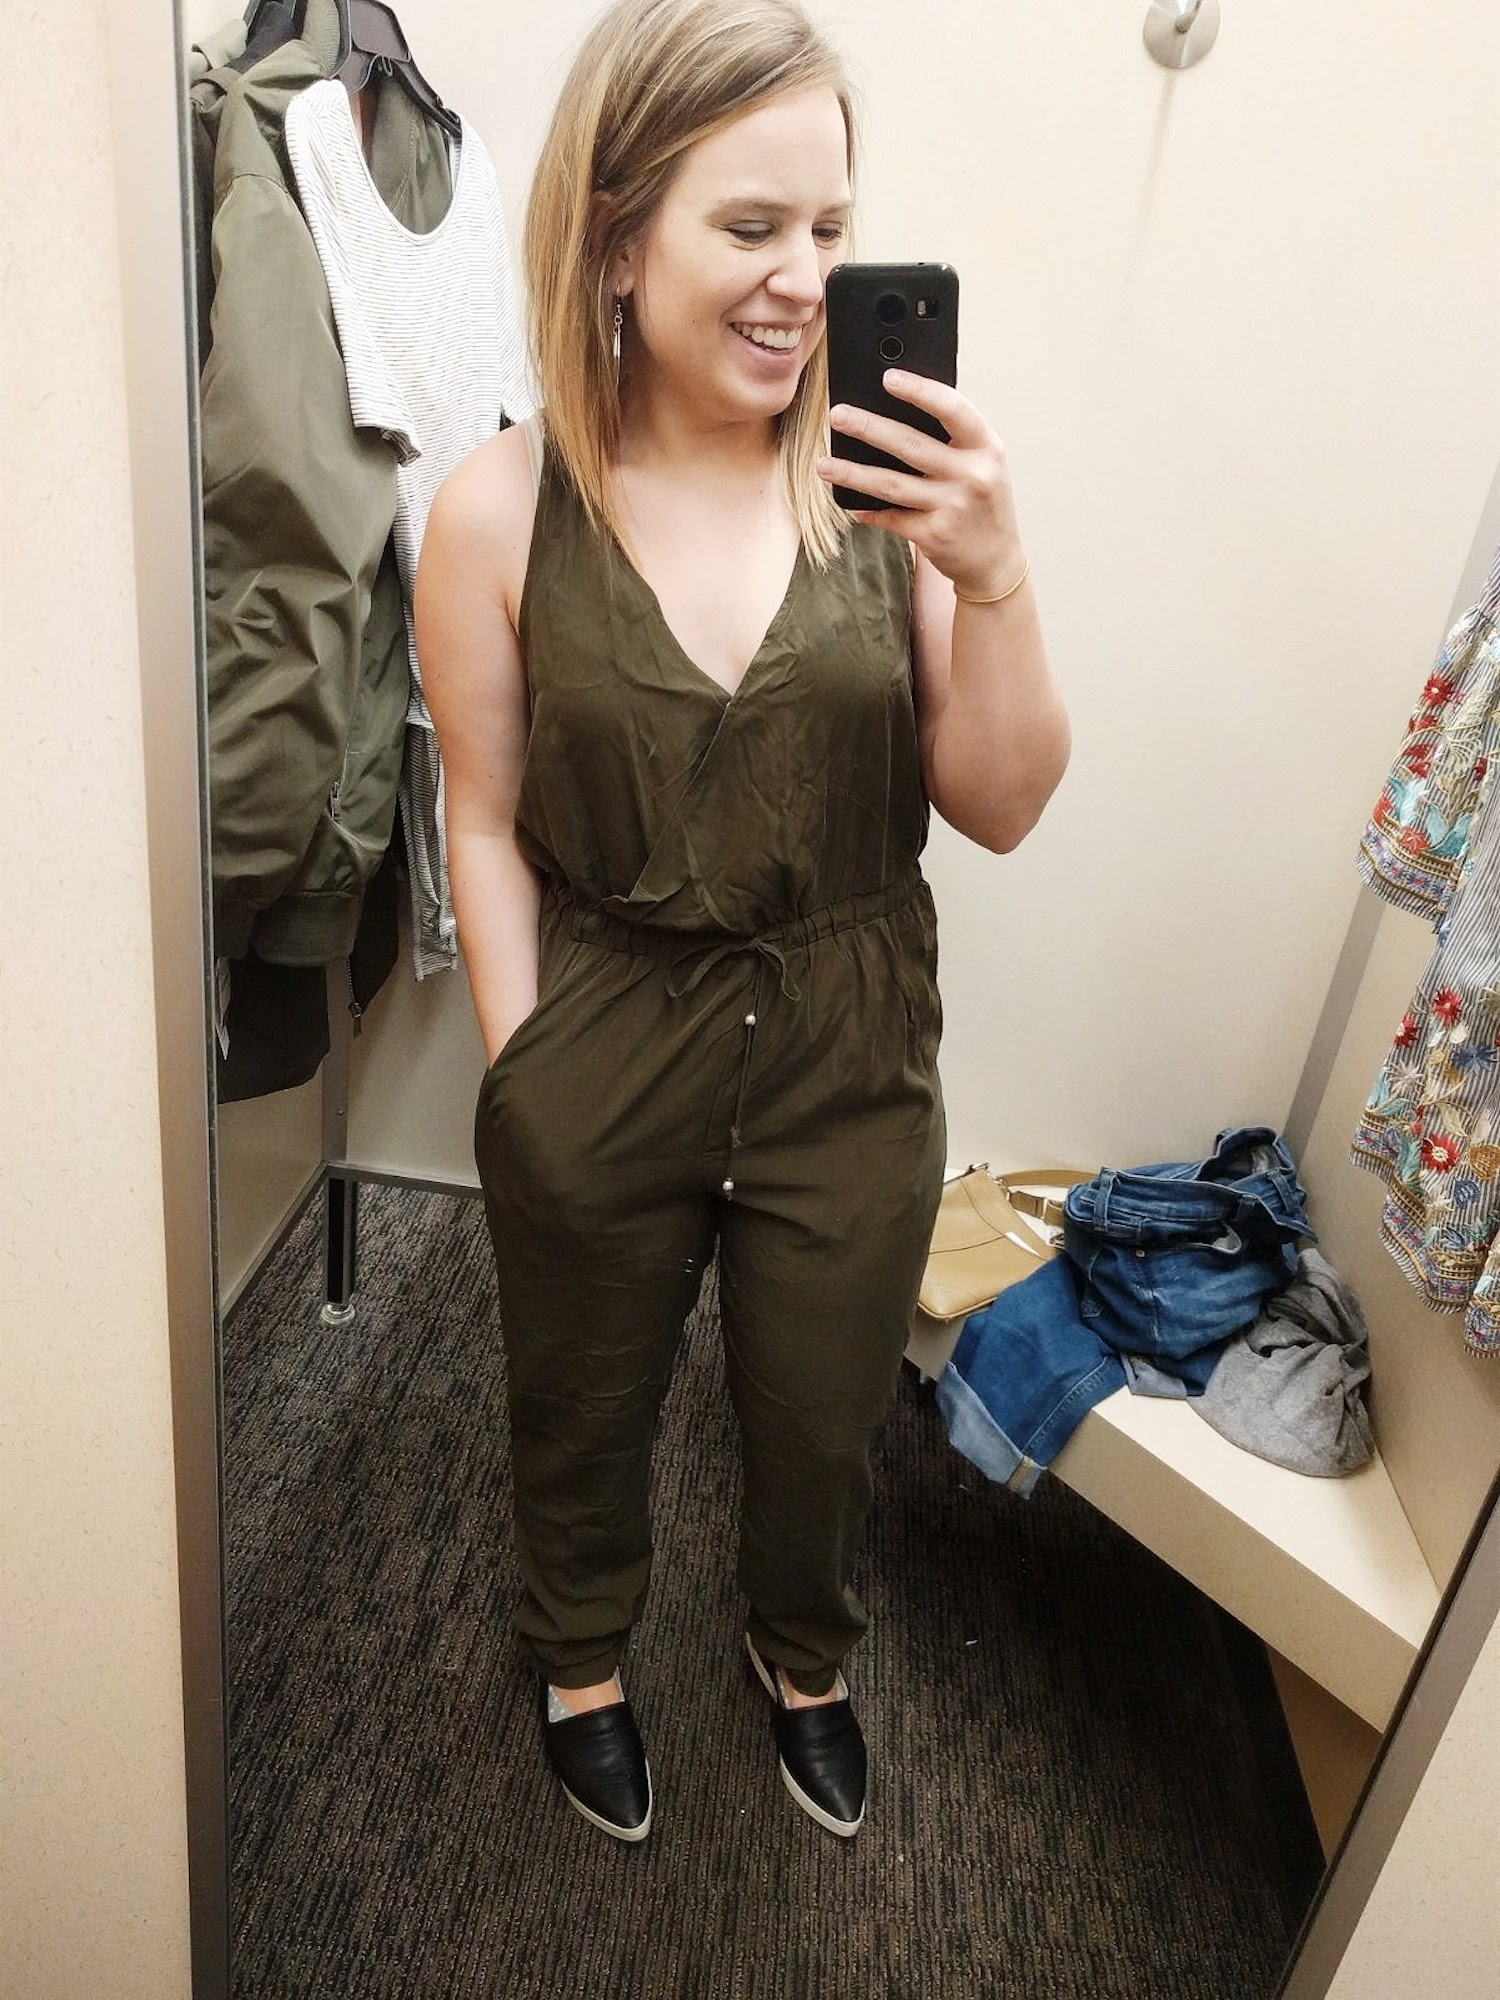 We went shopping for travel stuff and I tried on this jumpsuit for kicks. It was so awkward and made me look like I had Kim K's booty. So funny.